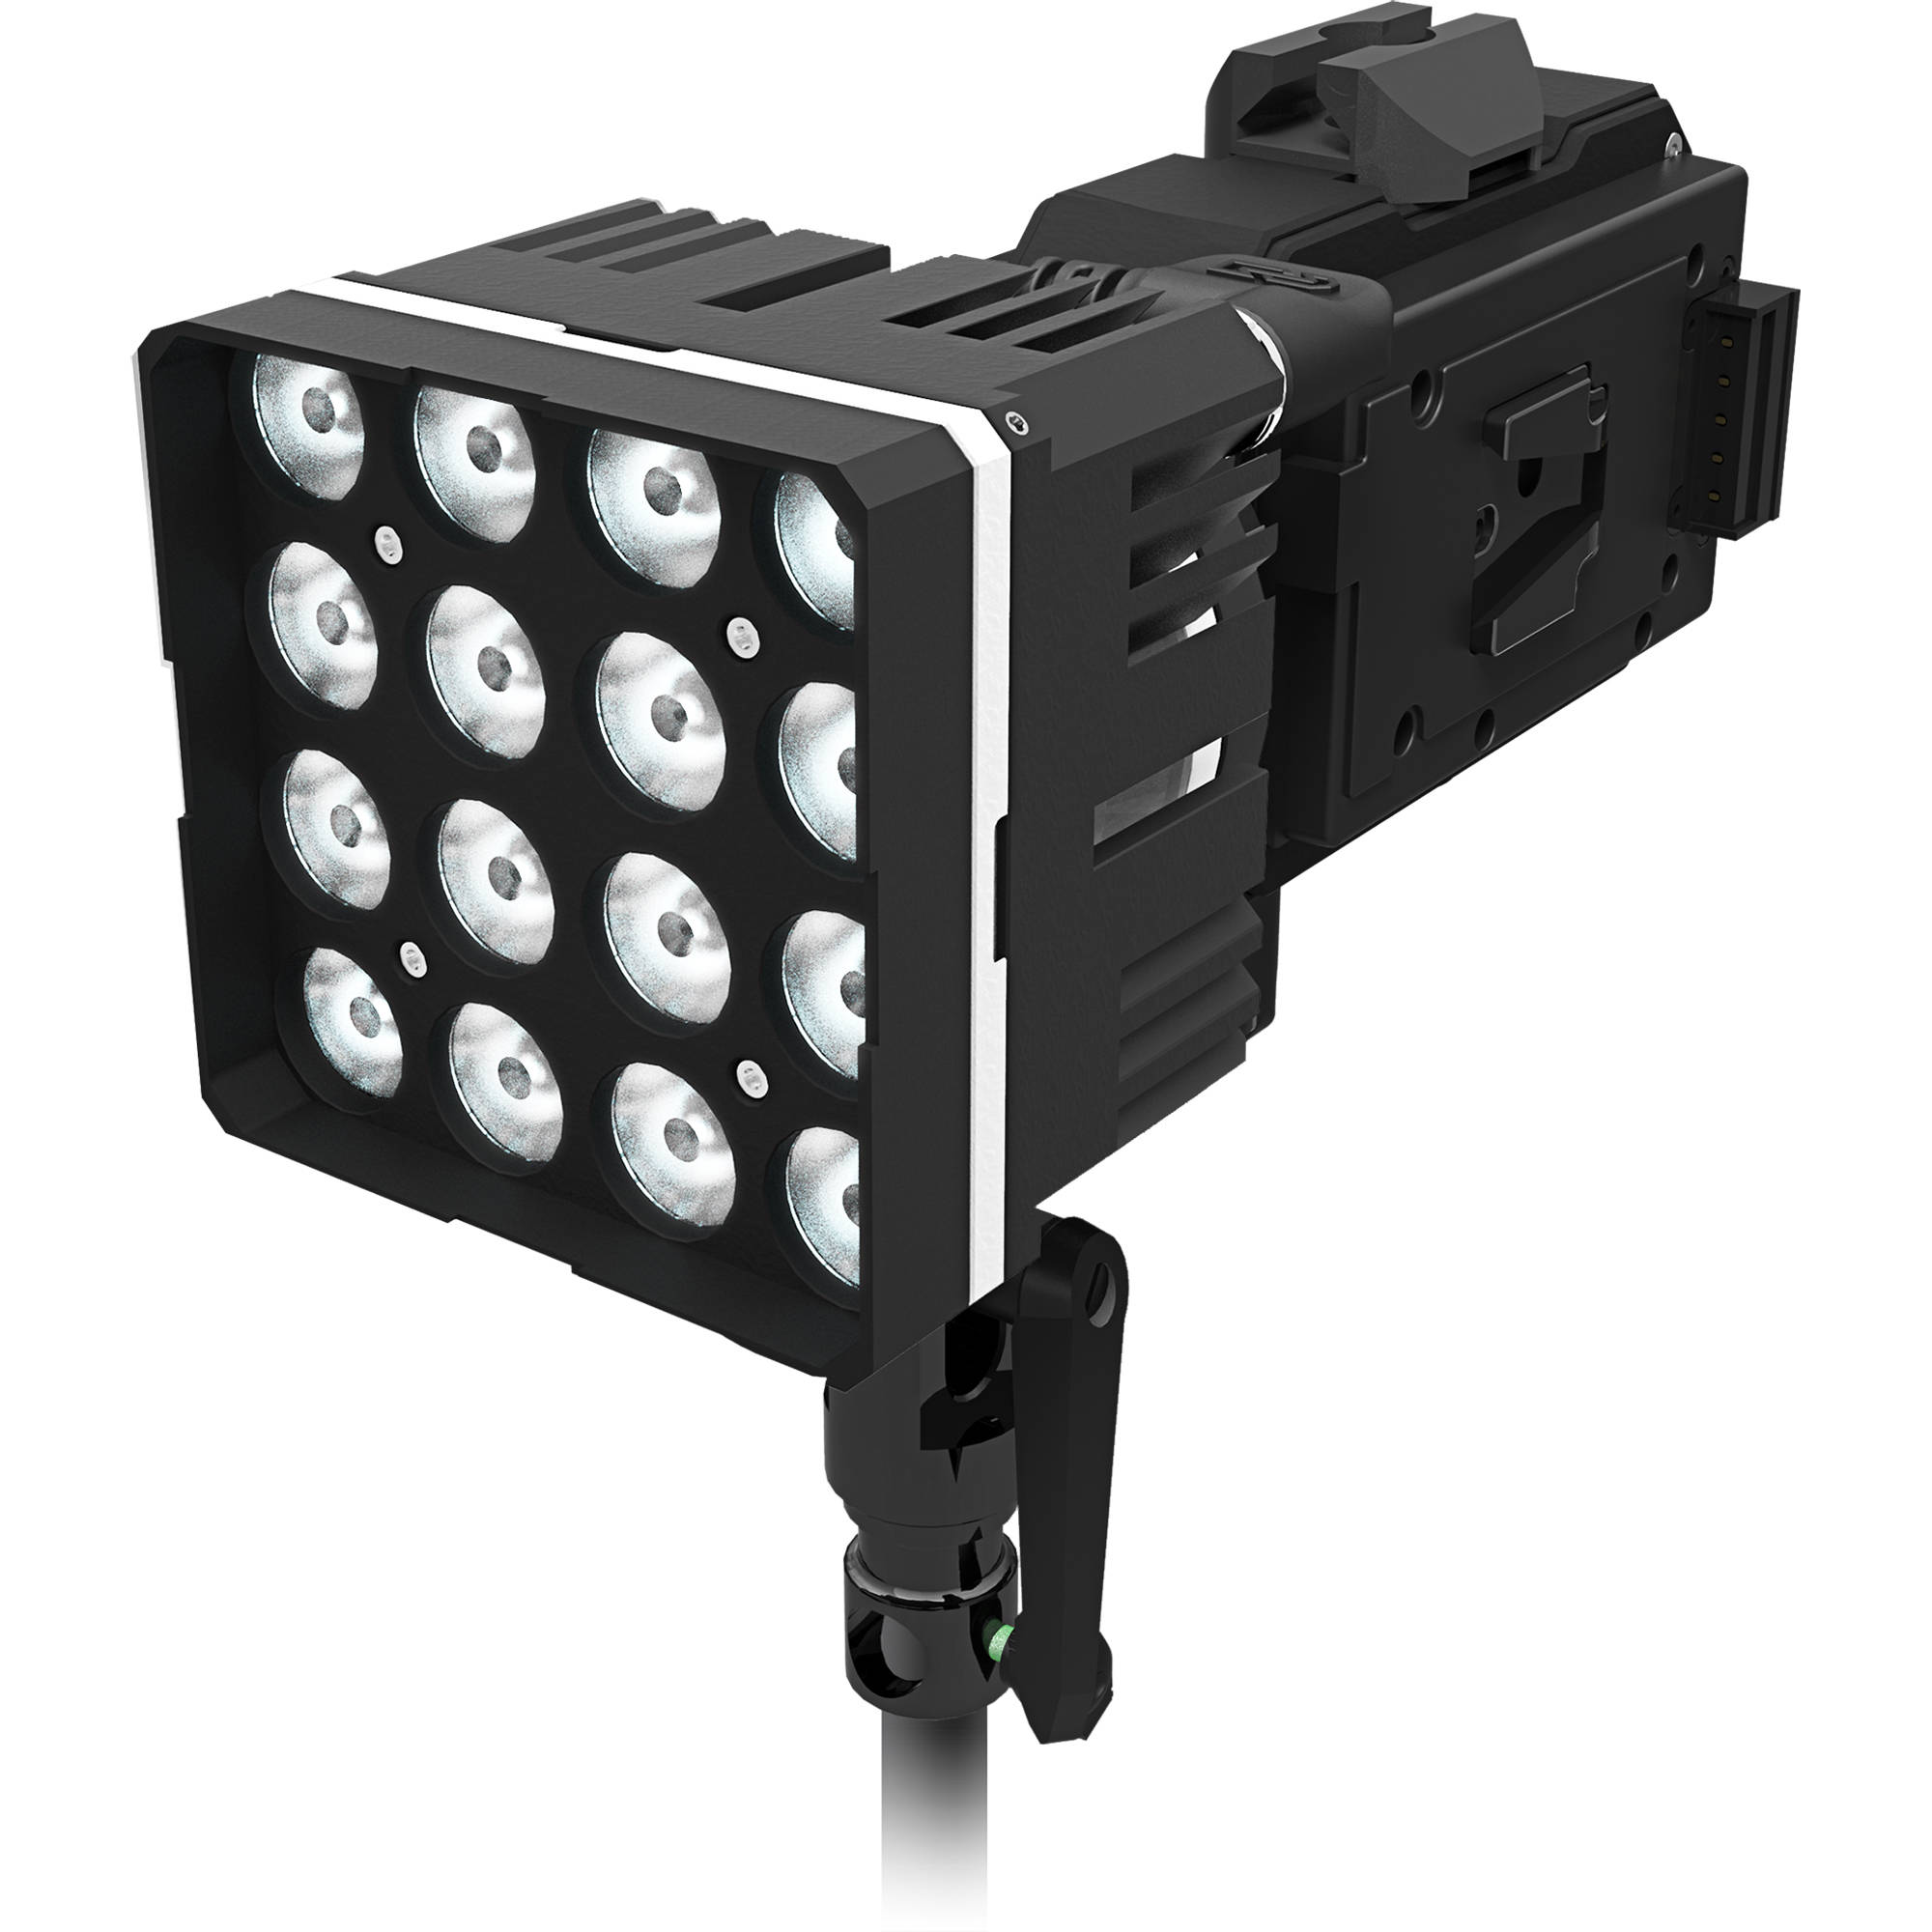 Digital Sputnik Ds 1 Led Light Modular System Ds5a Bh Photo Universal Fuse And Relay Box